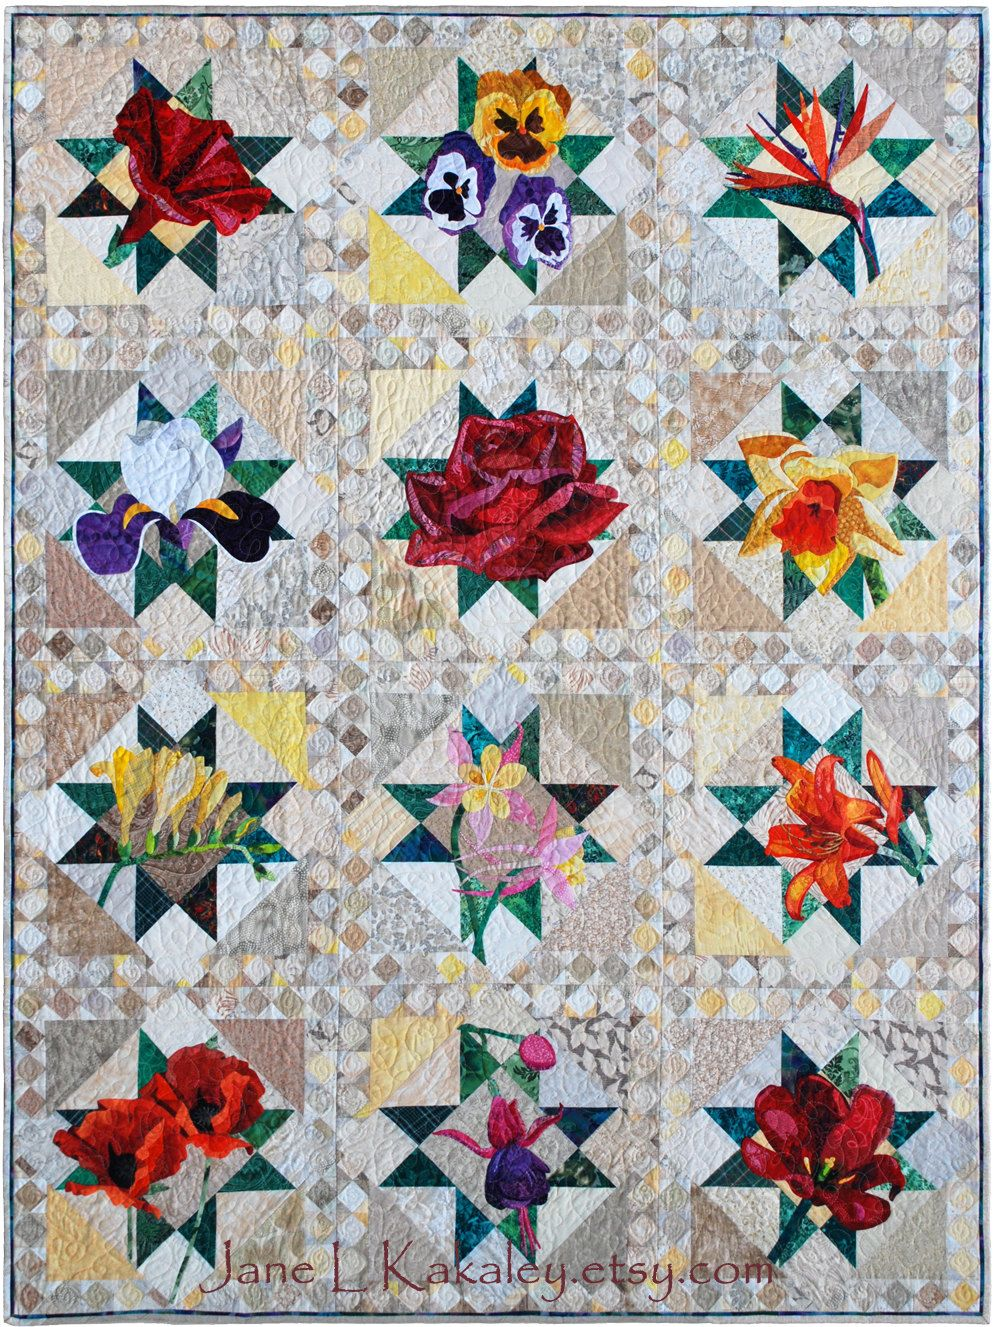 Flower Applique Quilt Patterns New Decoration